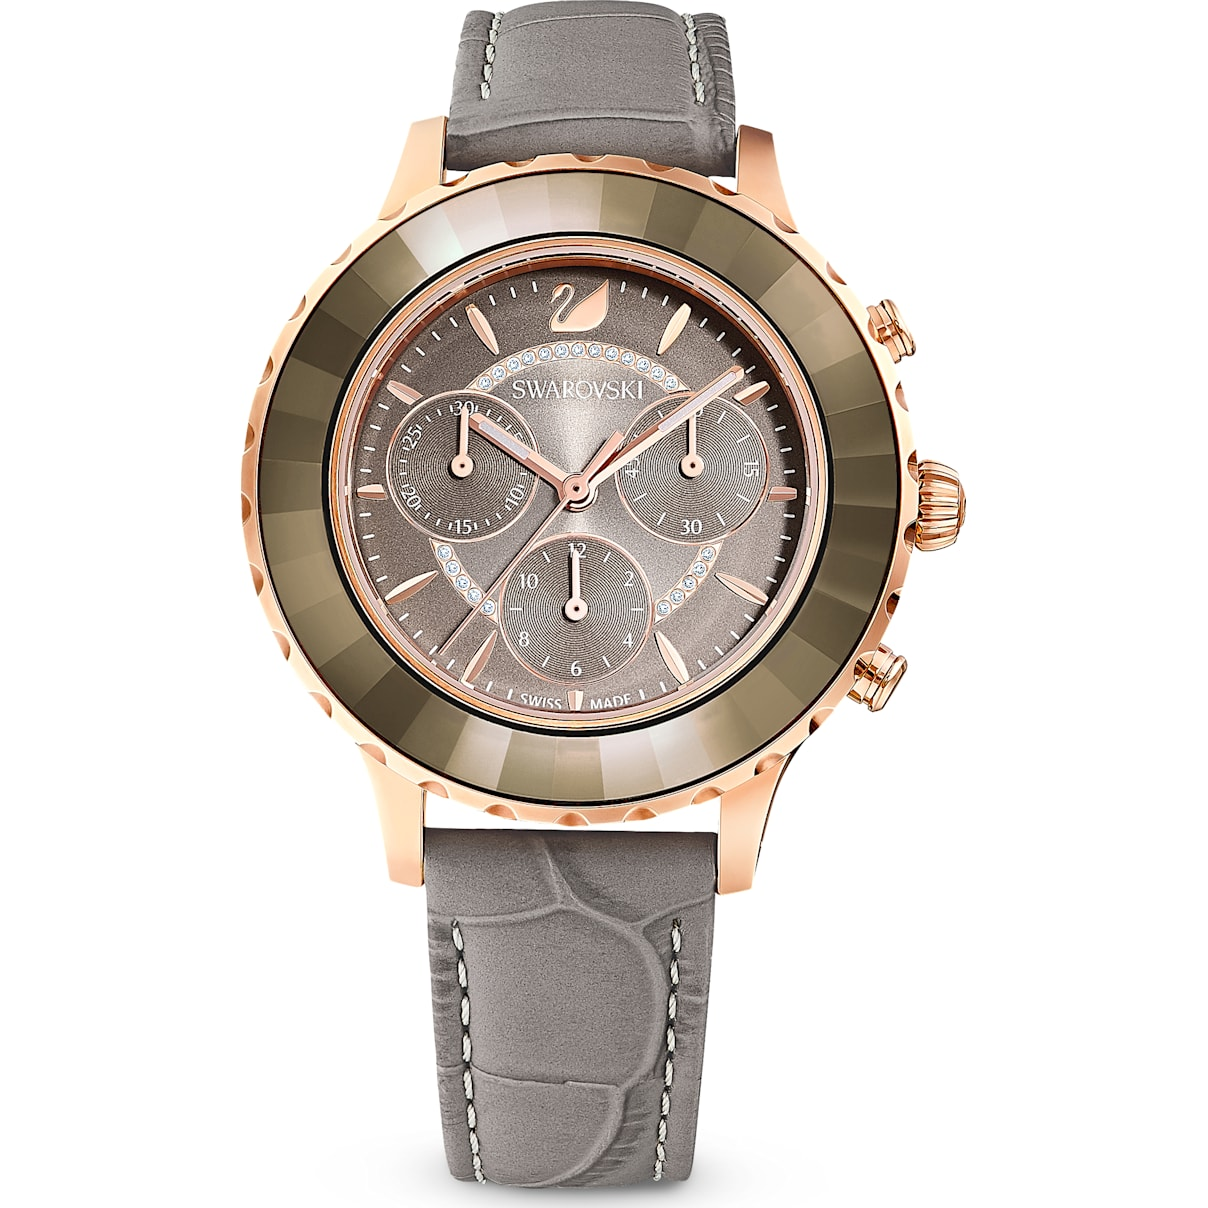 Swarovski Octea Lux Chrono Watch, Leather Strap, Gray, Rose-gold tone PVD